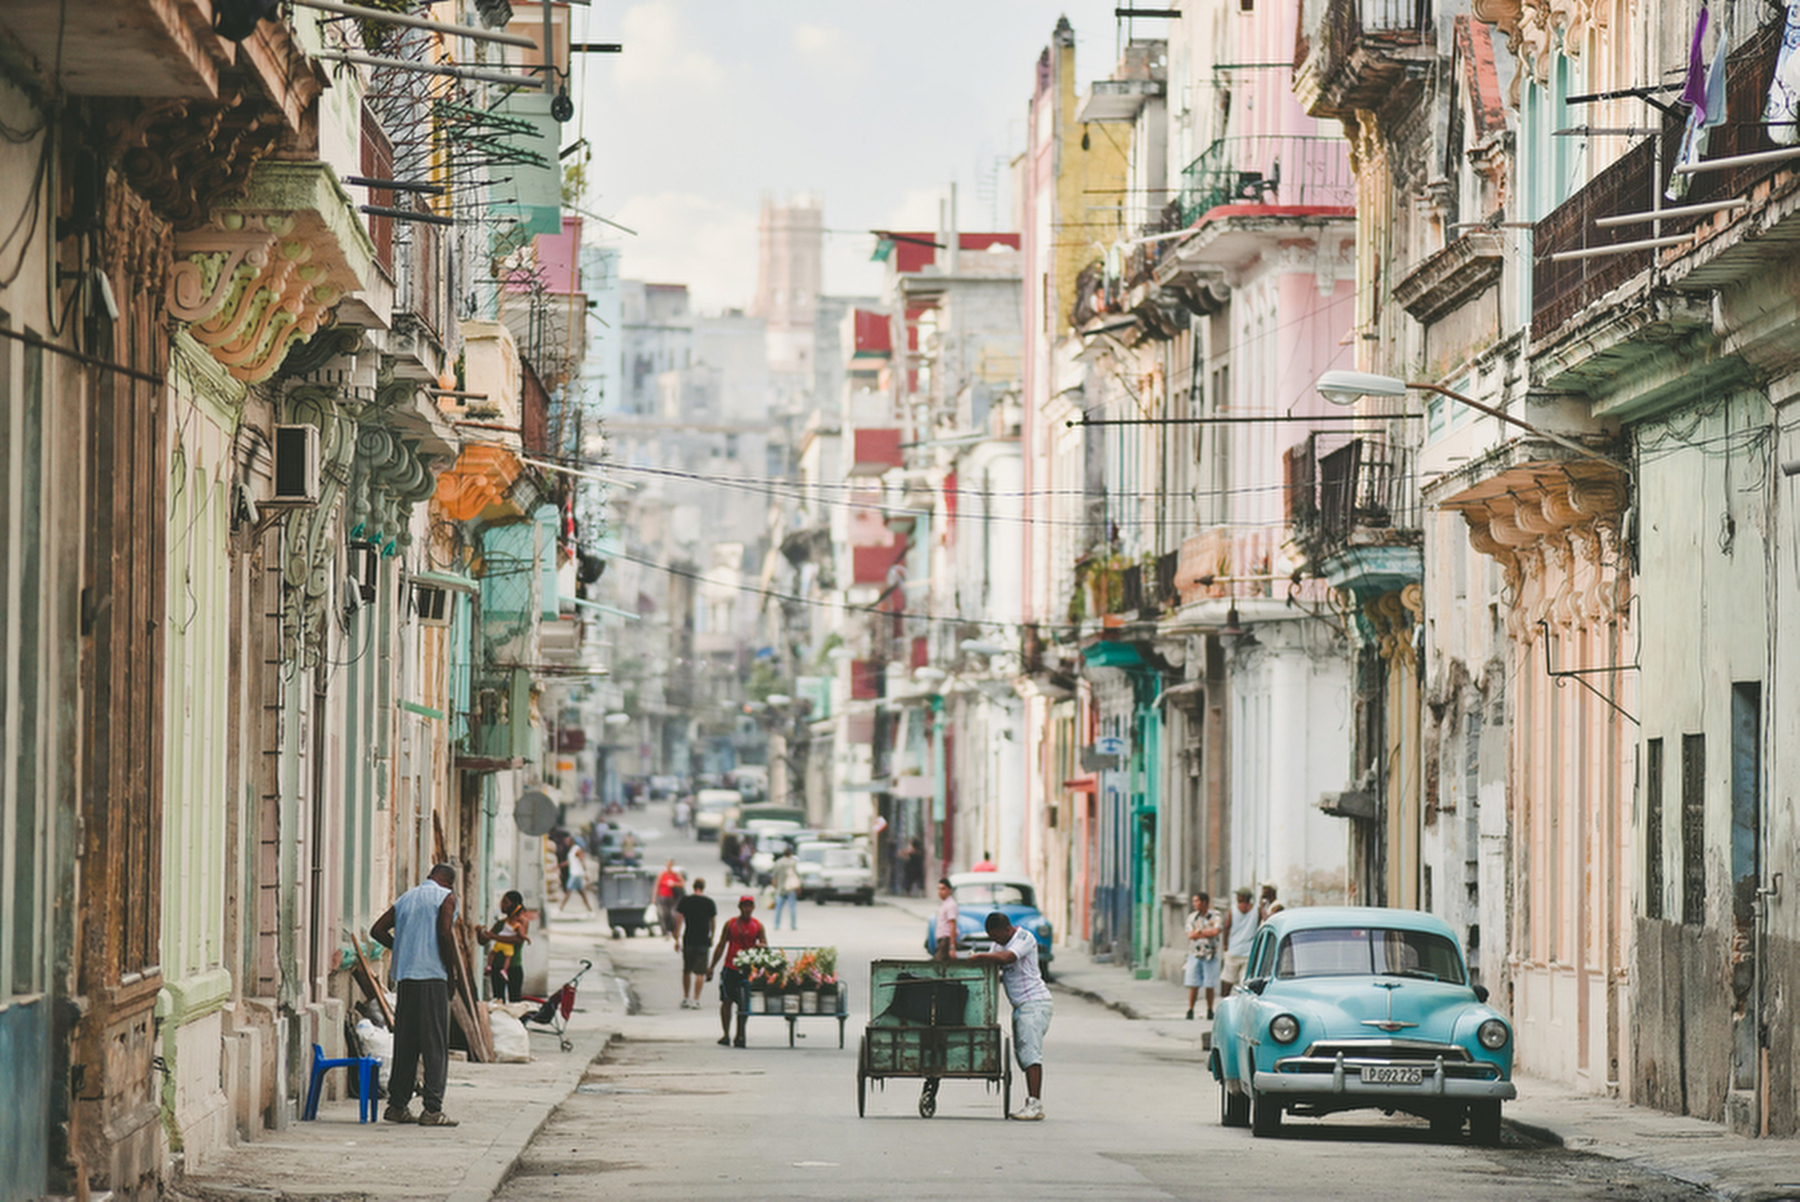 Photojournal: a rustic colonial feel in the streets of Cuba